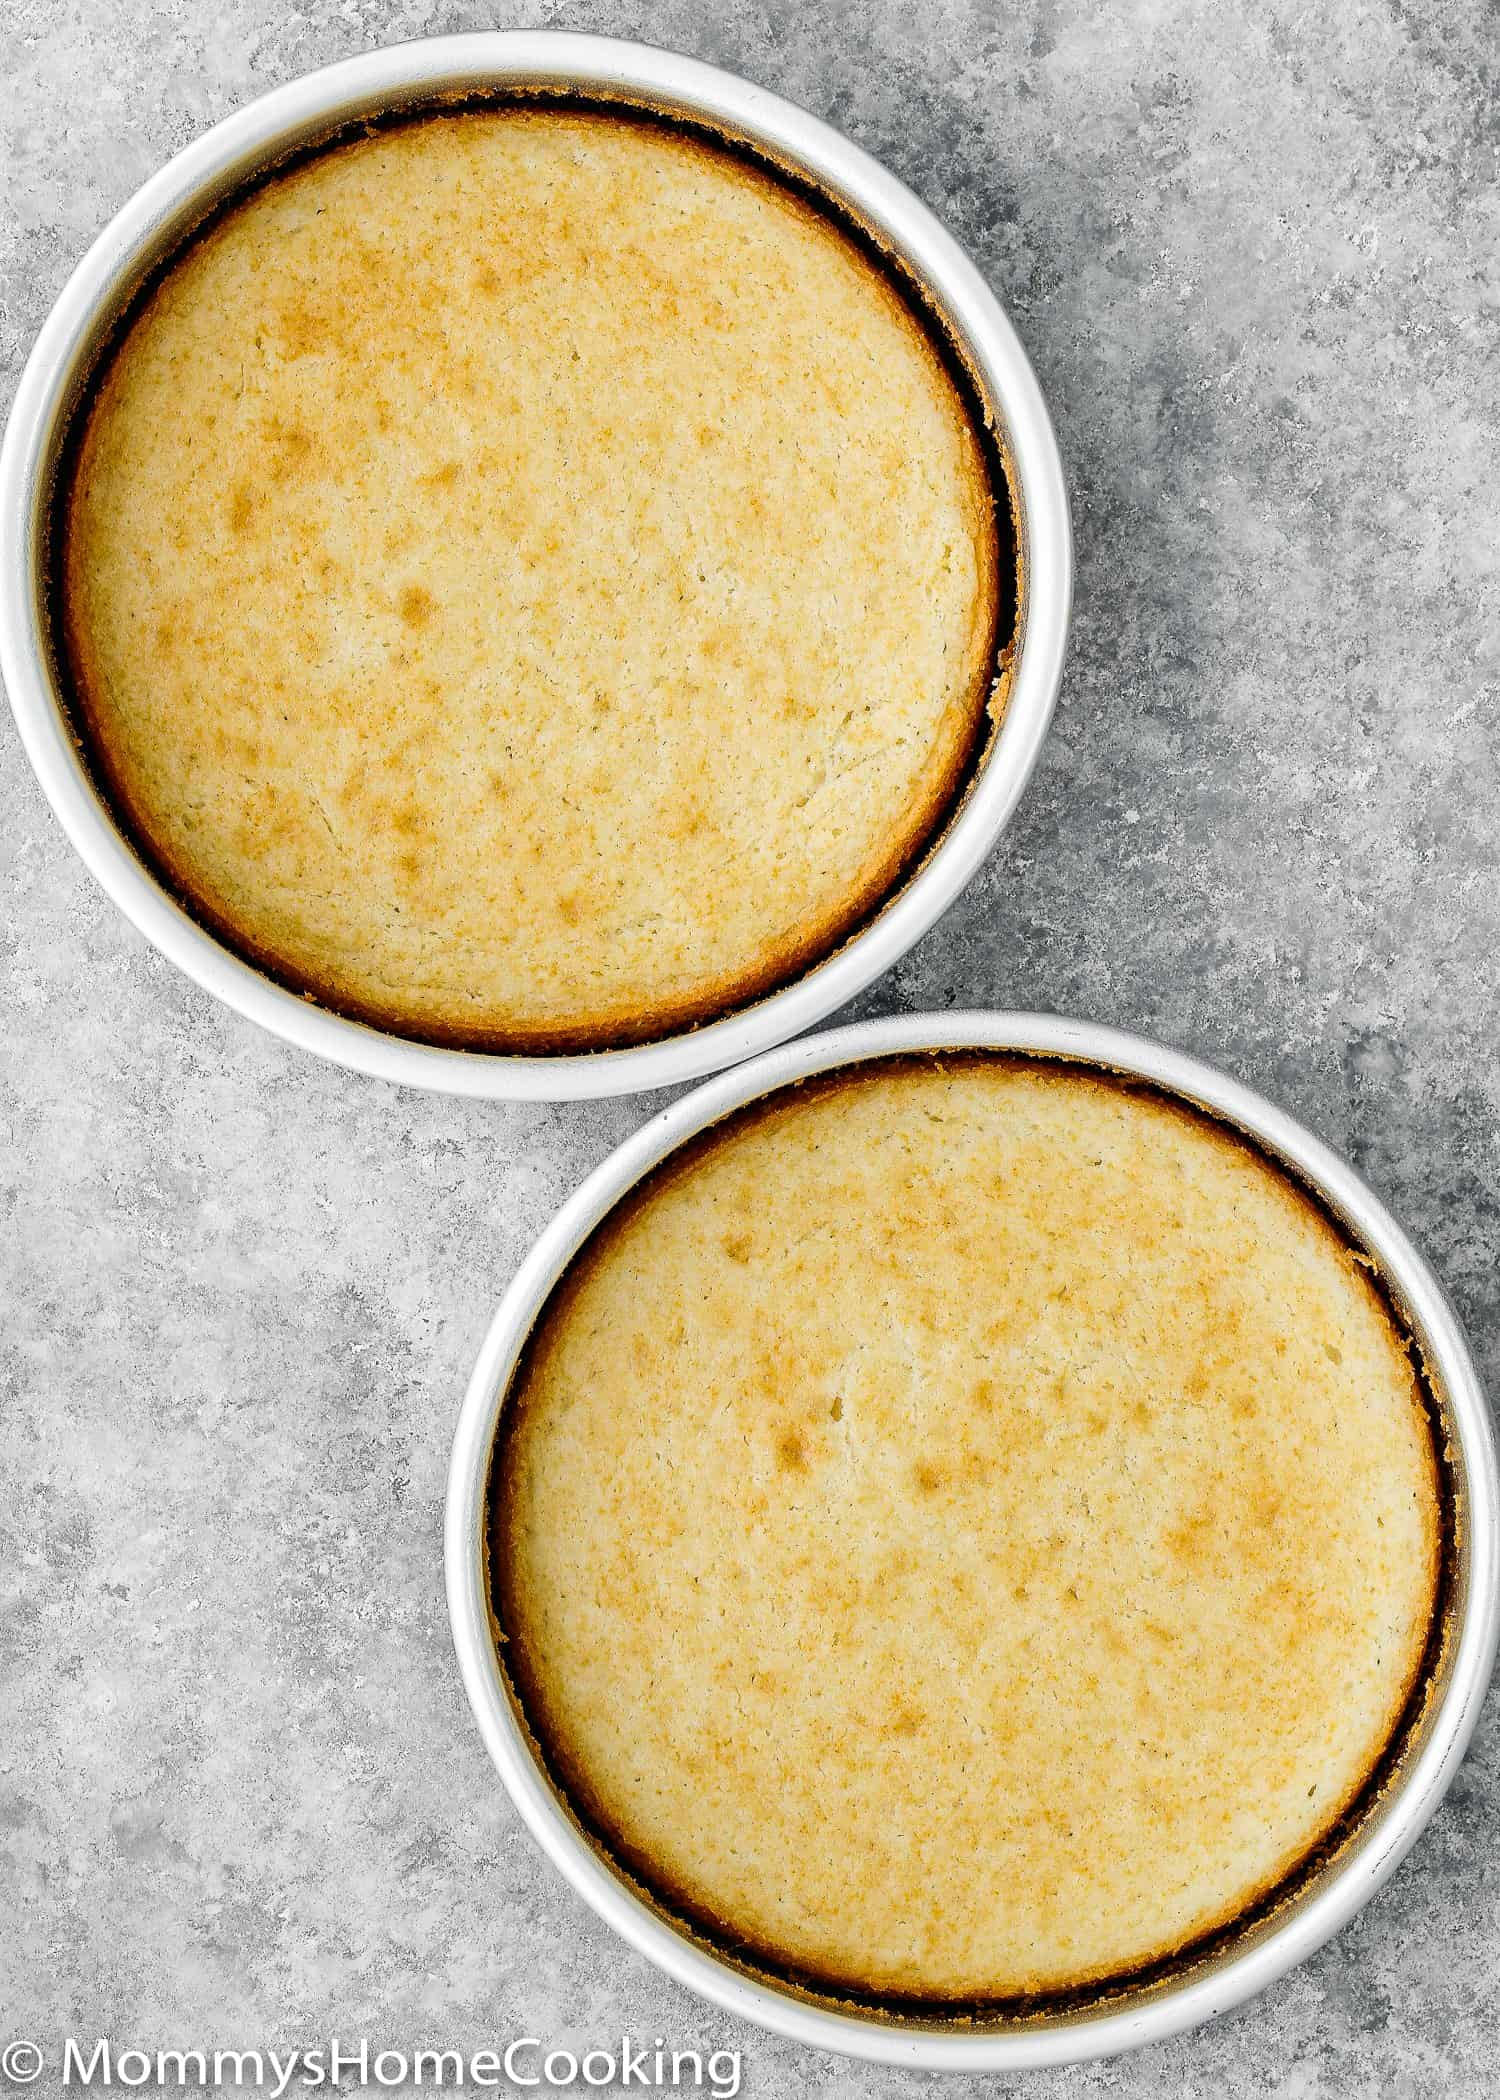 How To Grease A Cake Pan Without Flour